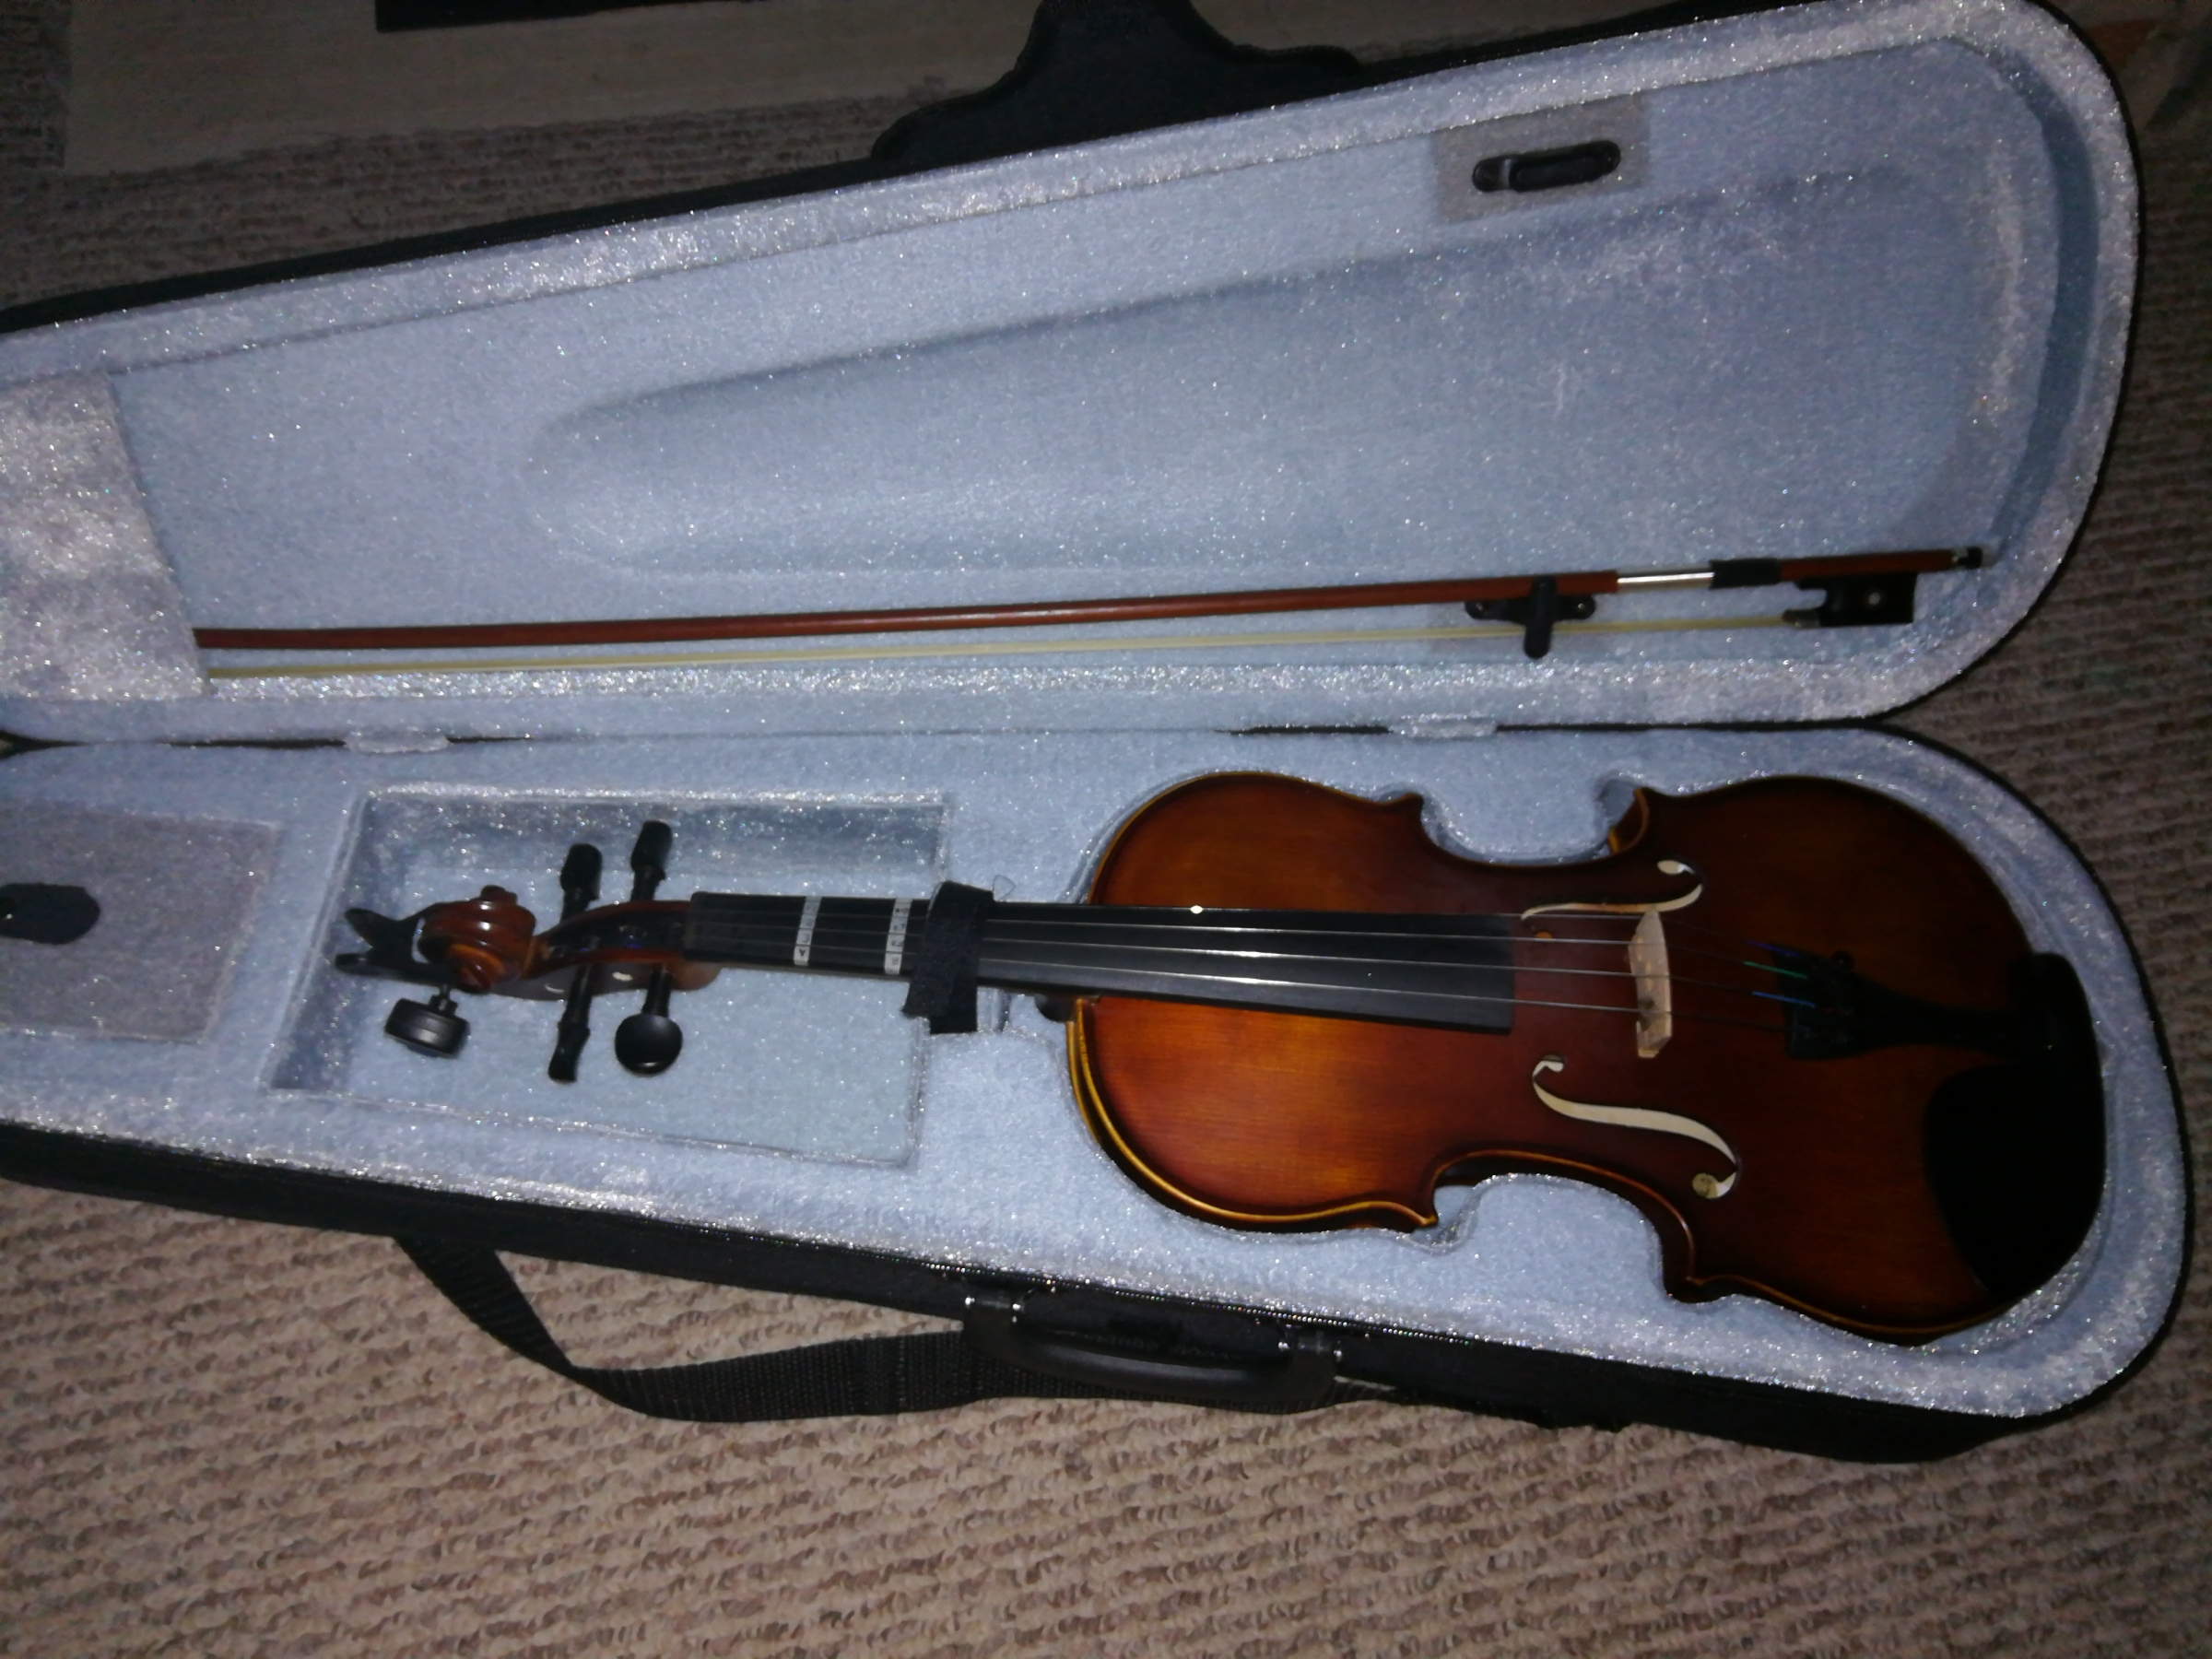 Very good quality violin